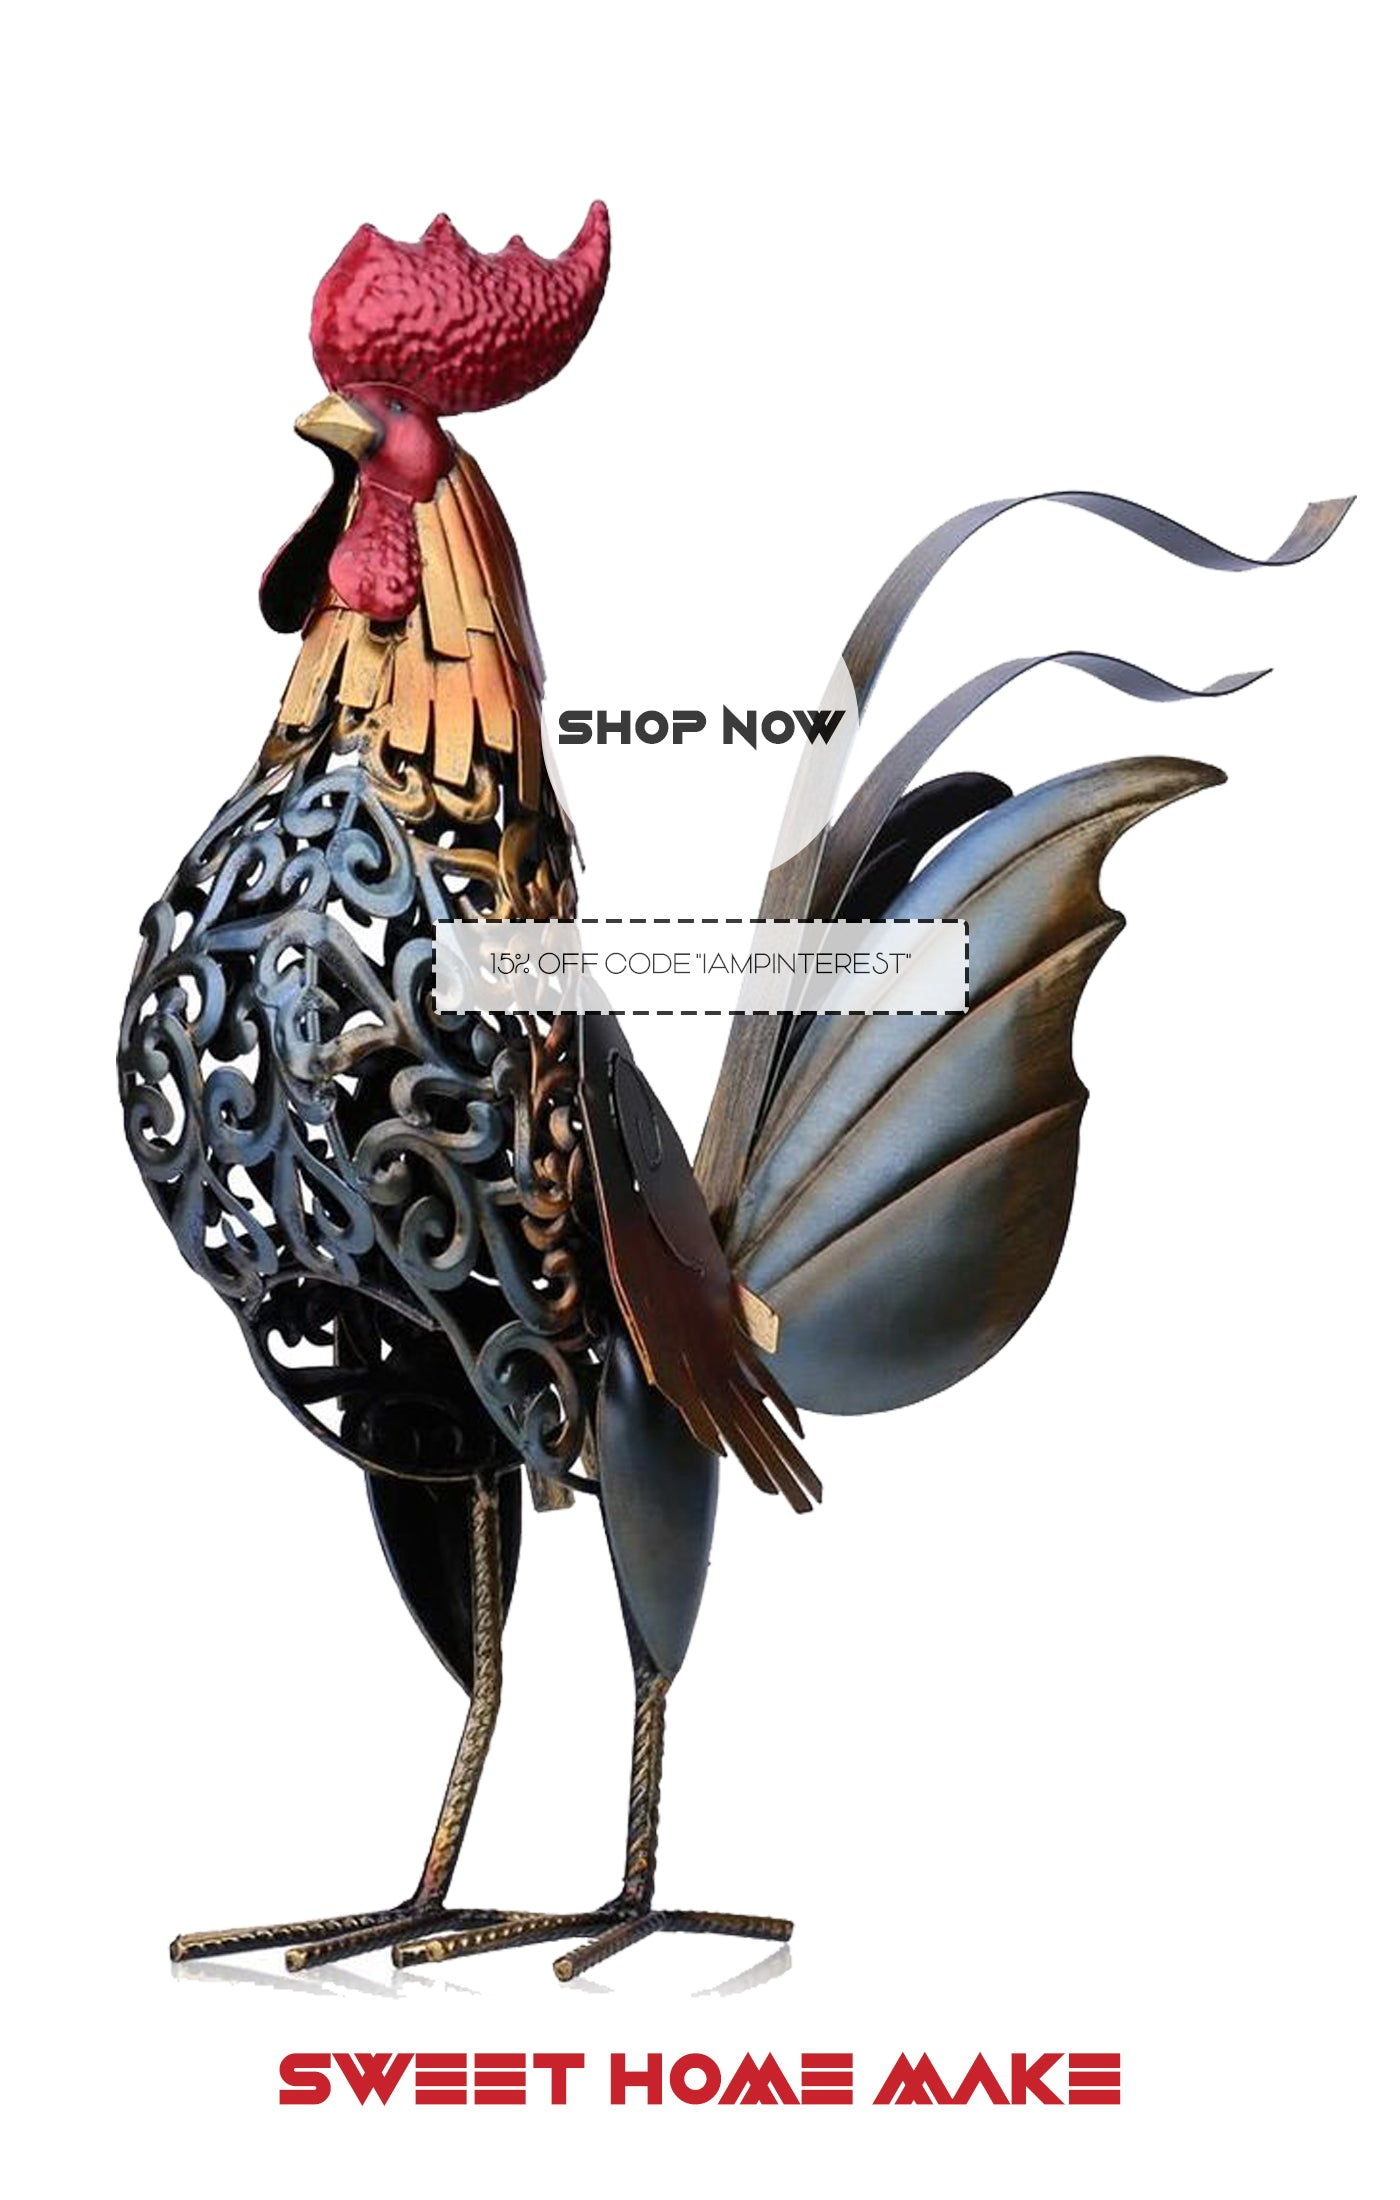 Metal Rooster Statue as Home Decor Store